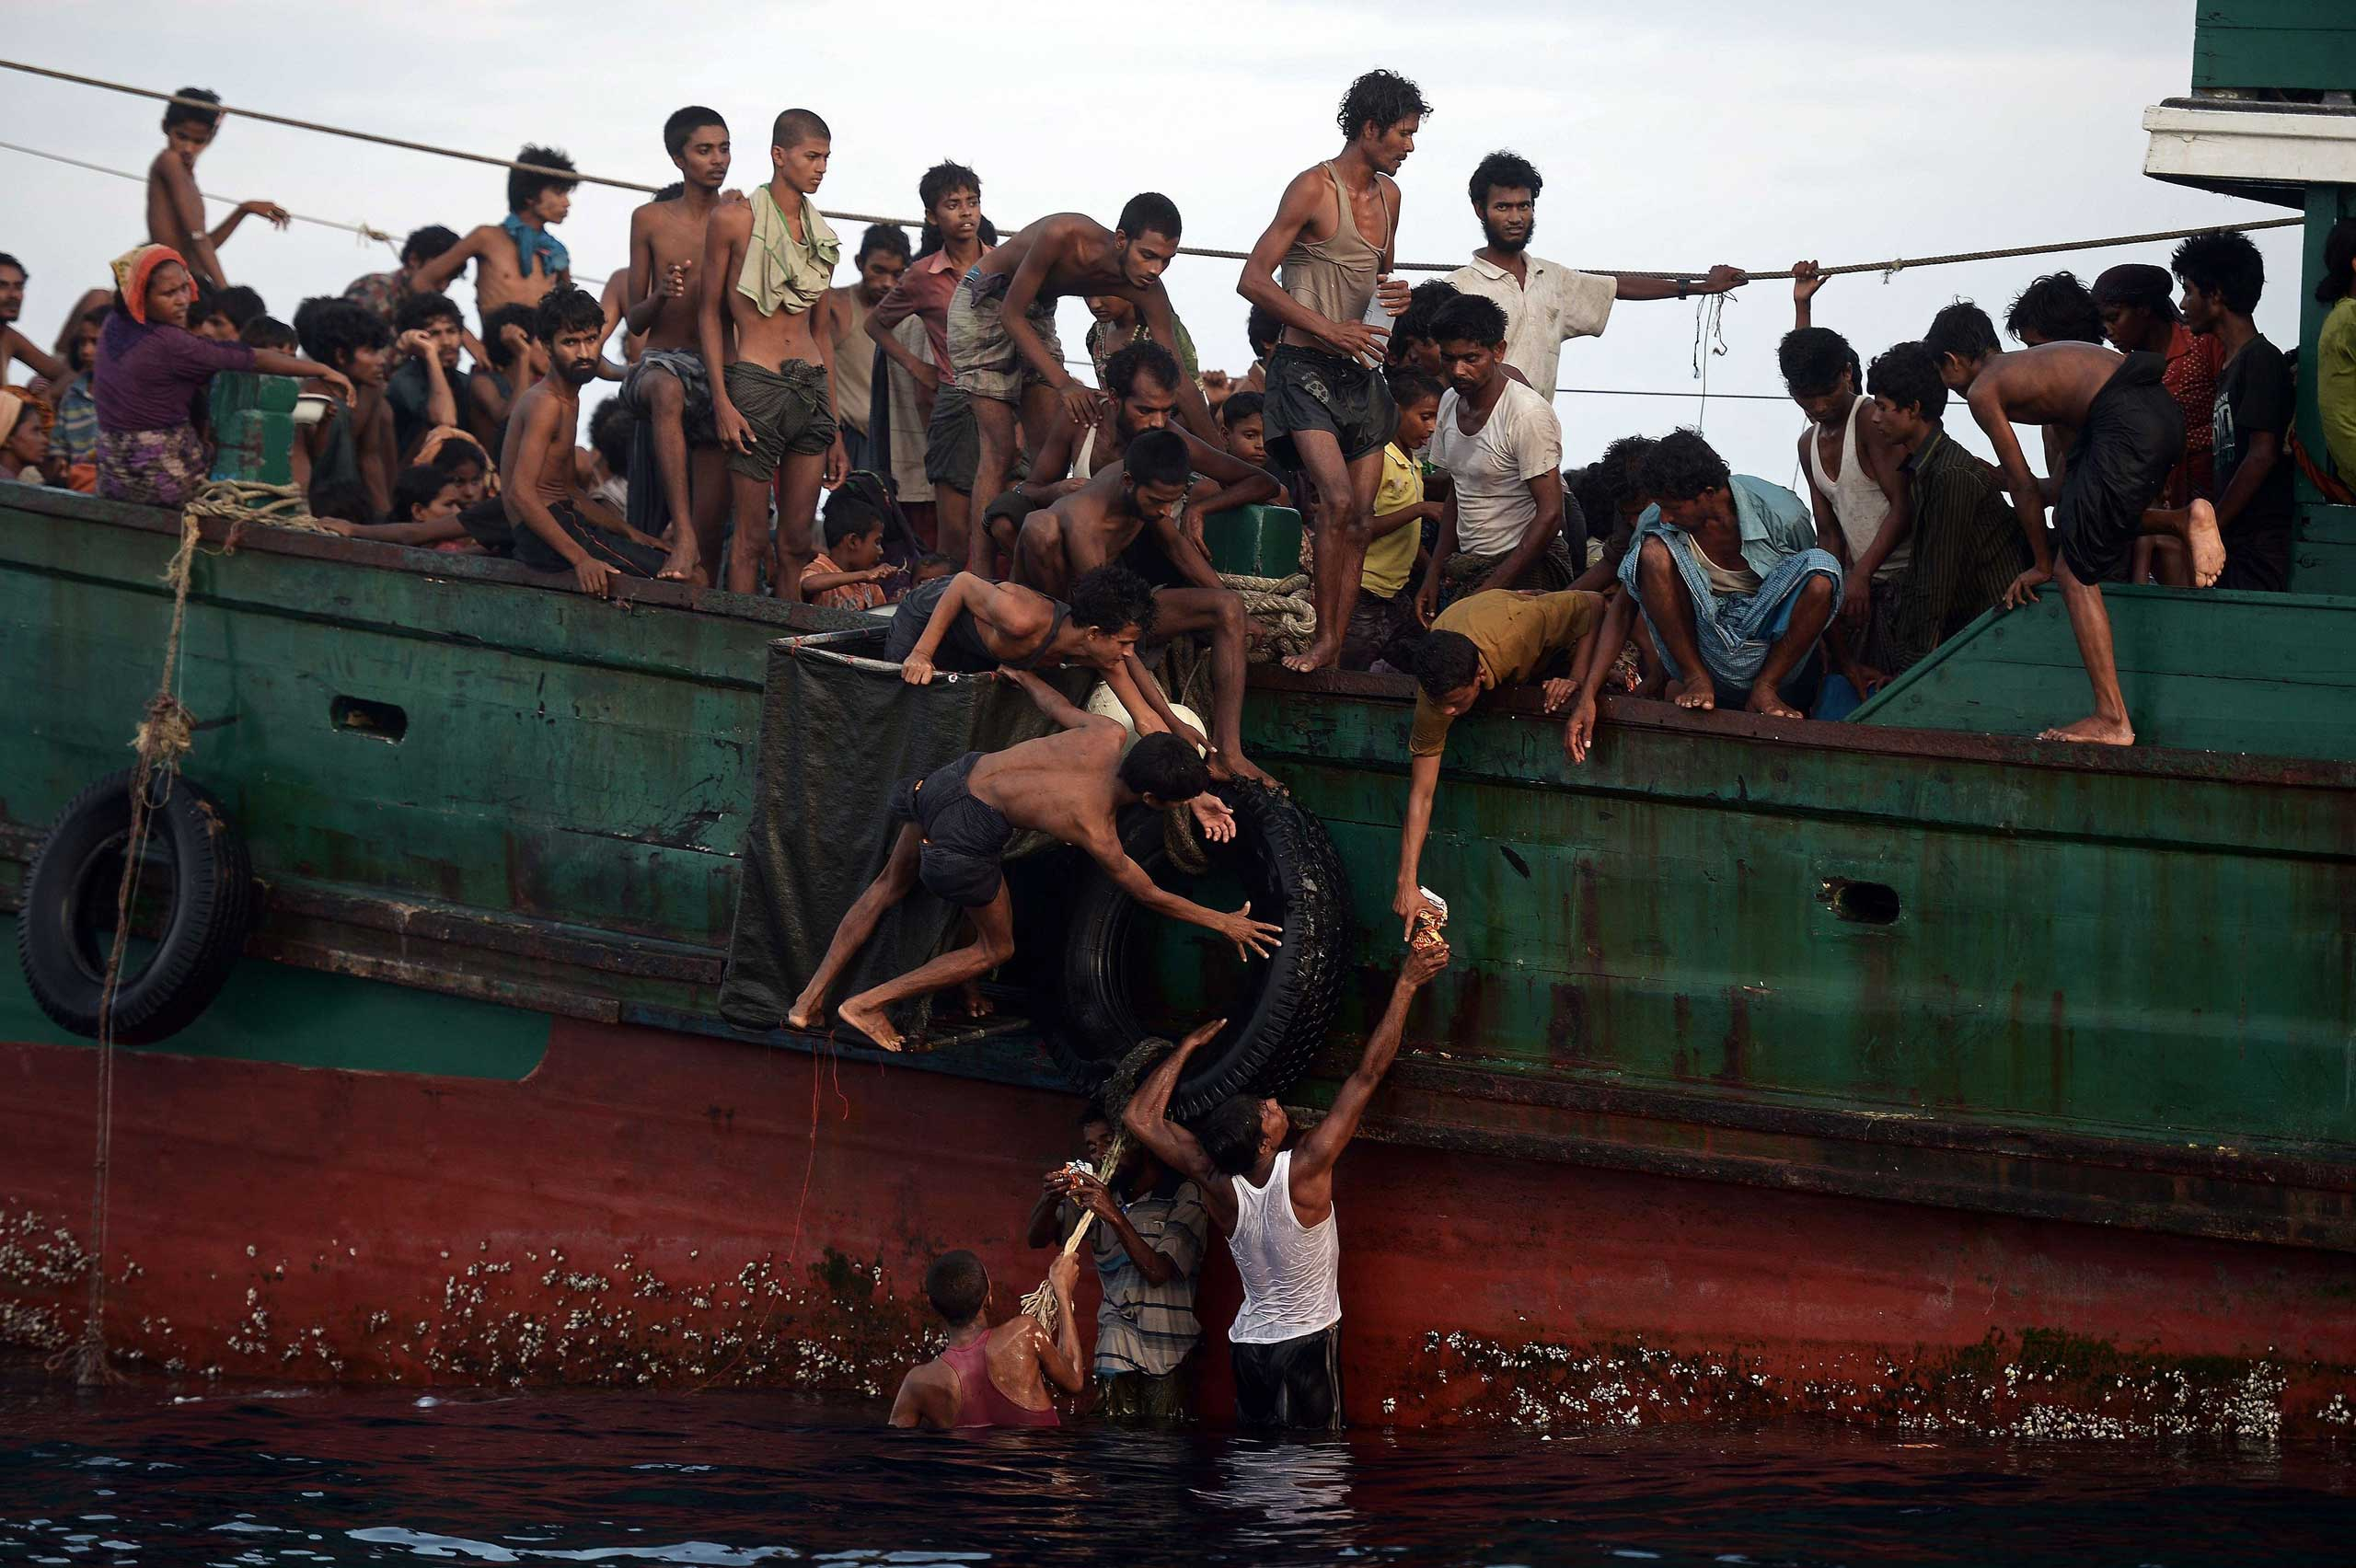 Rohingya migrants pass food supplies dropped by a Thai army helicopter to others aboard a boat drifting in Thai waters off the southern island of Koh Lipe in the Andaman sea.  A boat crammed with scores of Rohingya migrants—including many young children—was found drifting in Thai waters, with passengers saying several people had died over the last few days. May 14, 2015.